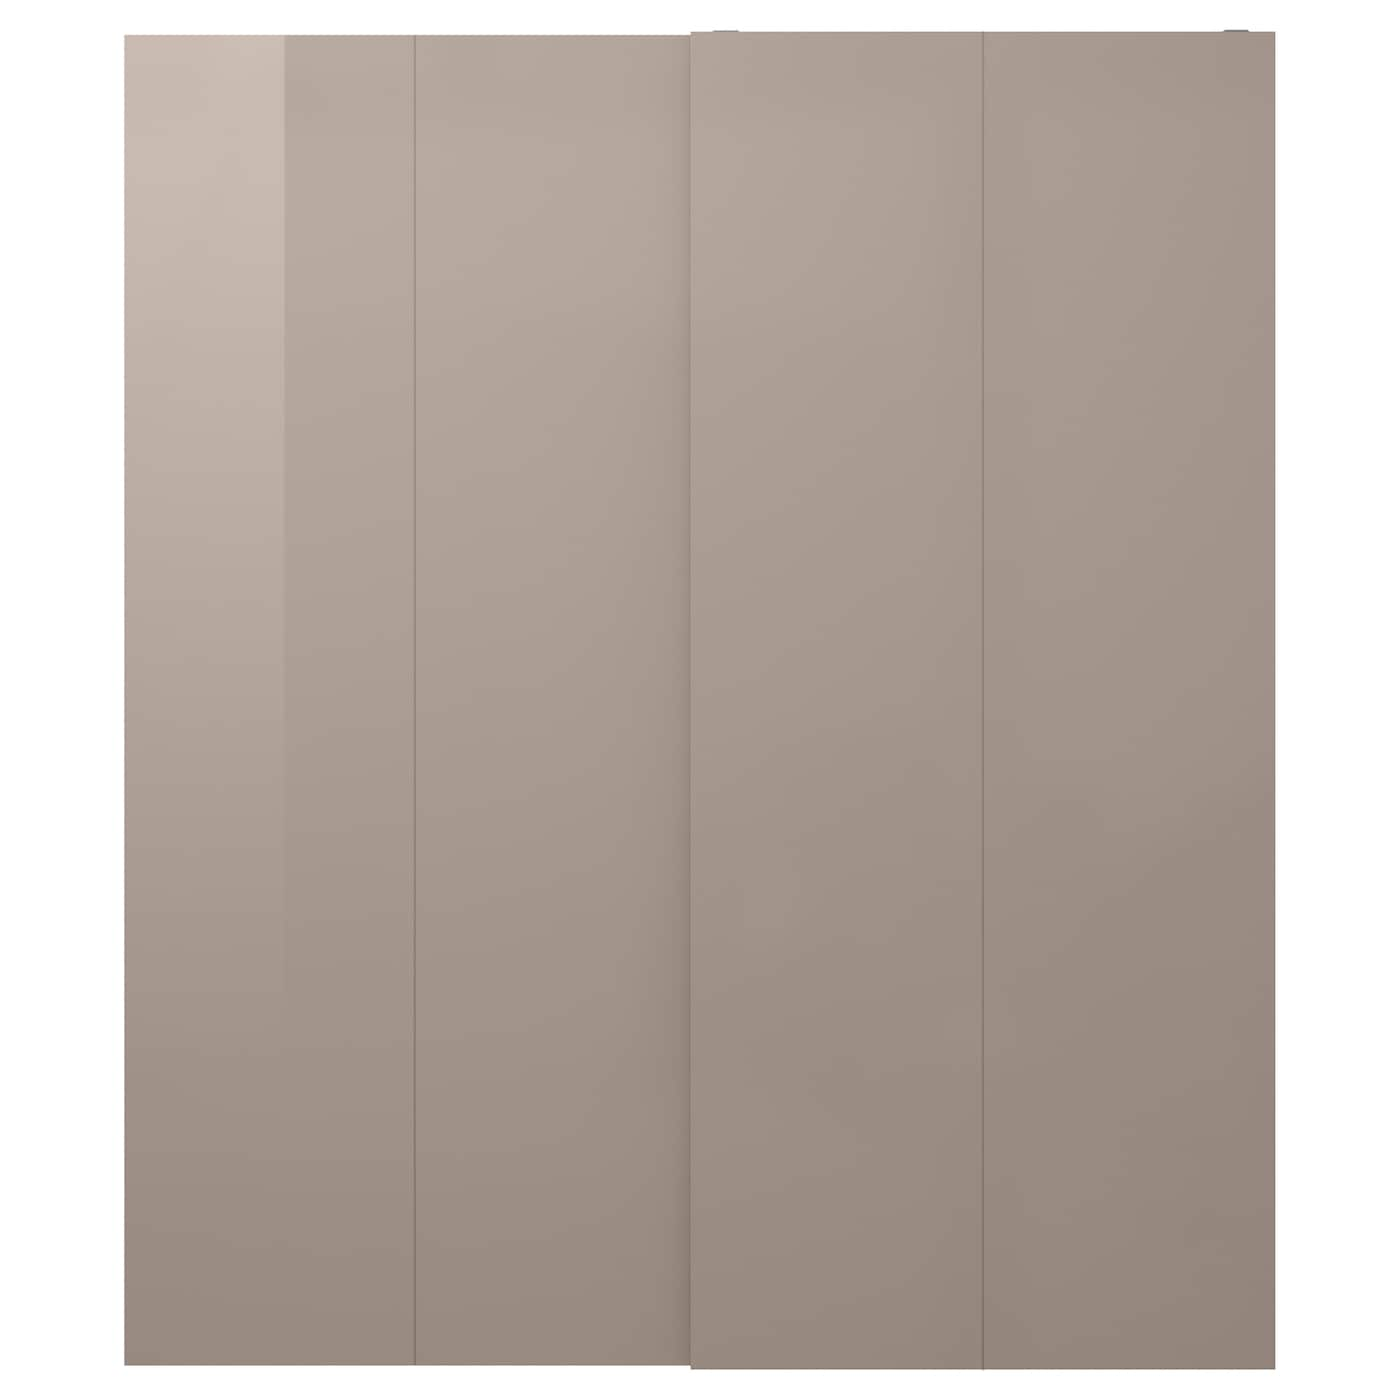 Hasvik pair of sliding doors high gloss dark beige 200x236 cm ikea - Porte accordeon ikea ...